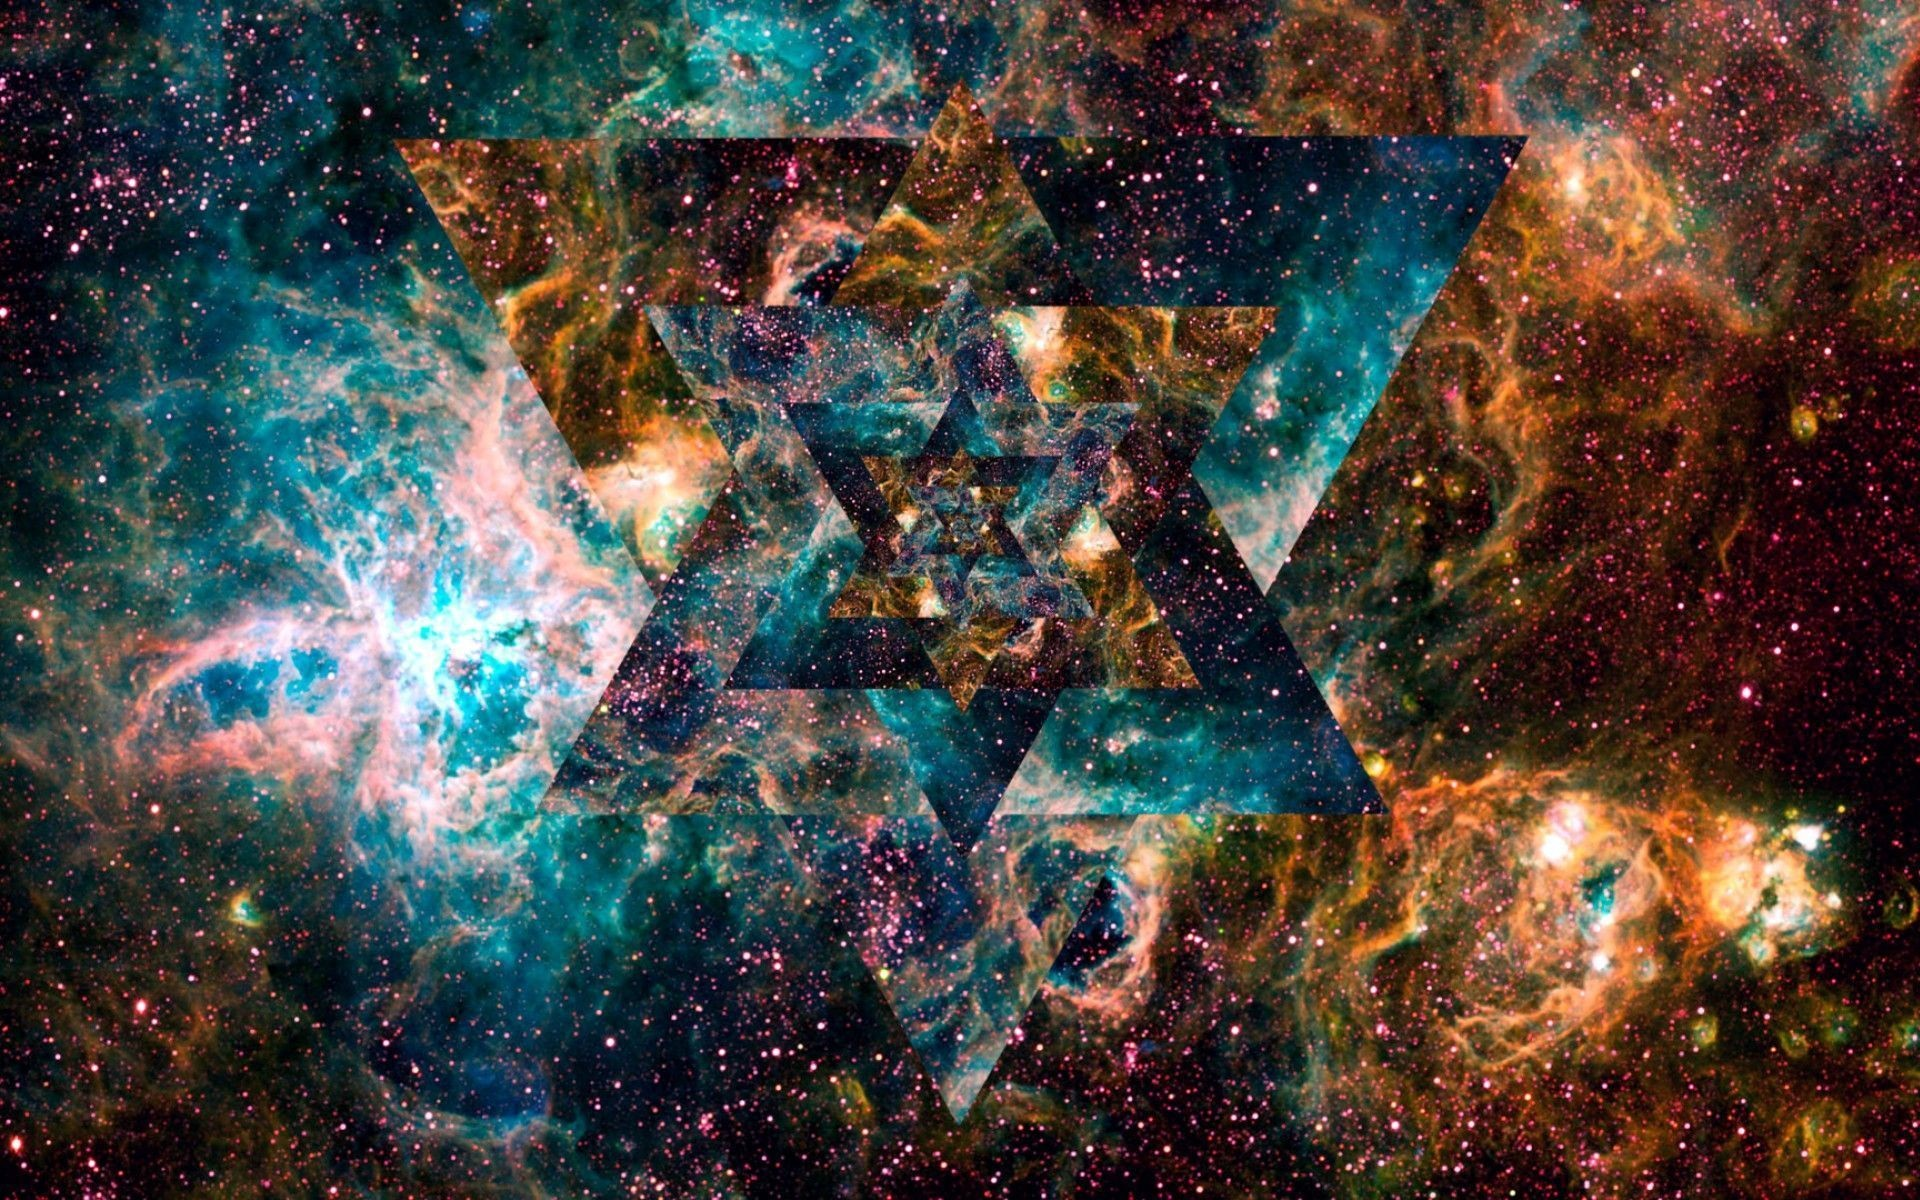 Trippy Space Wallpapers Images On Wallpaper Hd 1920 x 1200 px 692.31 KB  mushroom pictures iphone